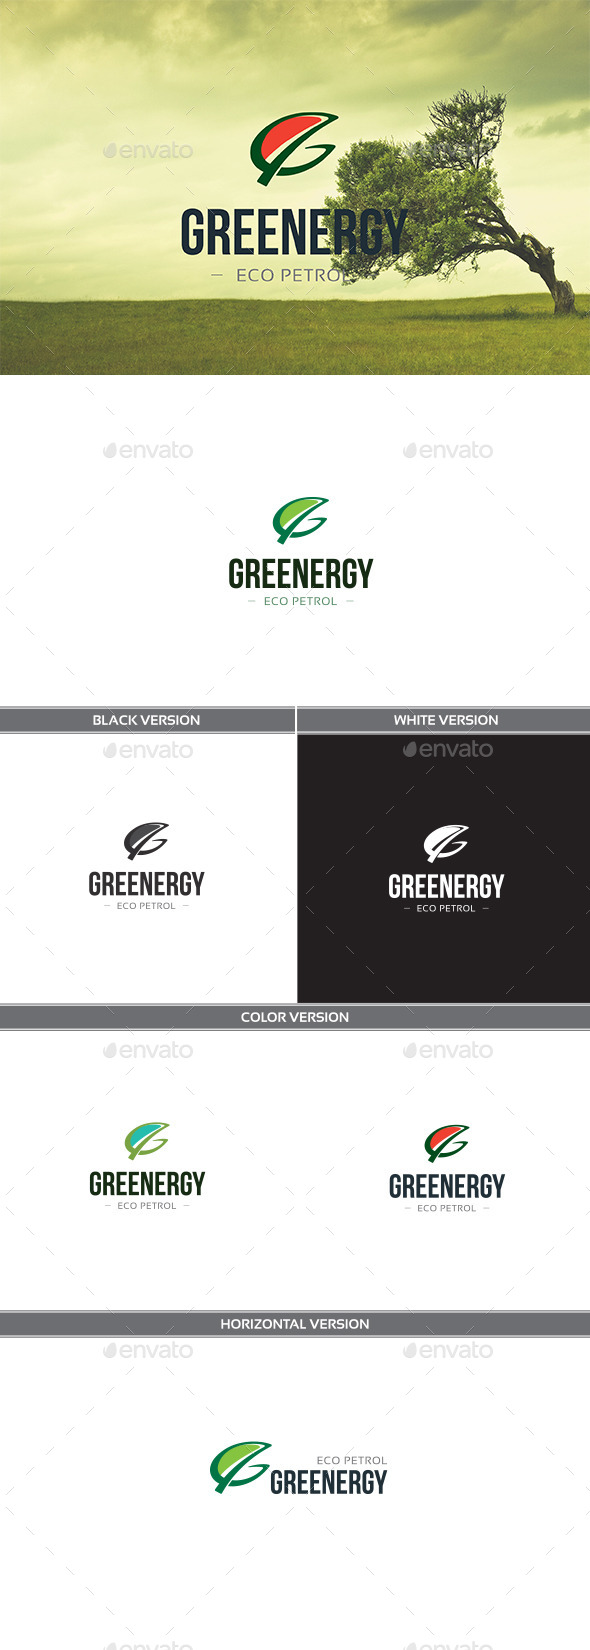 GraphicRiver Greenergy 11340611